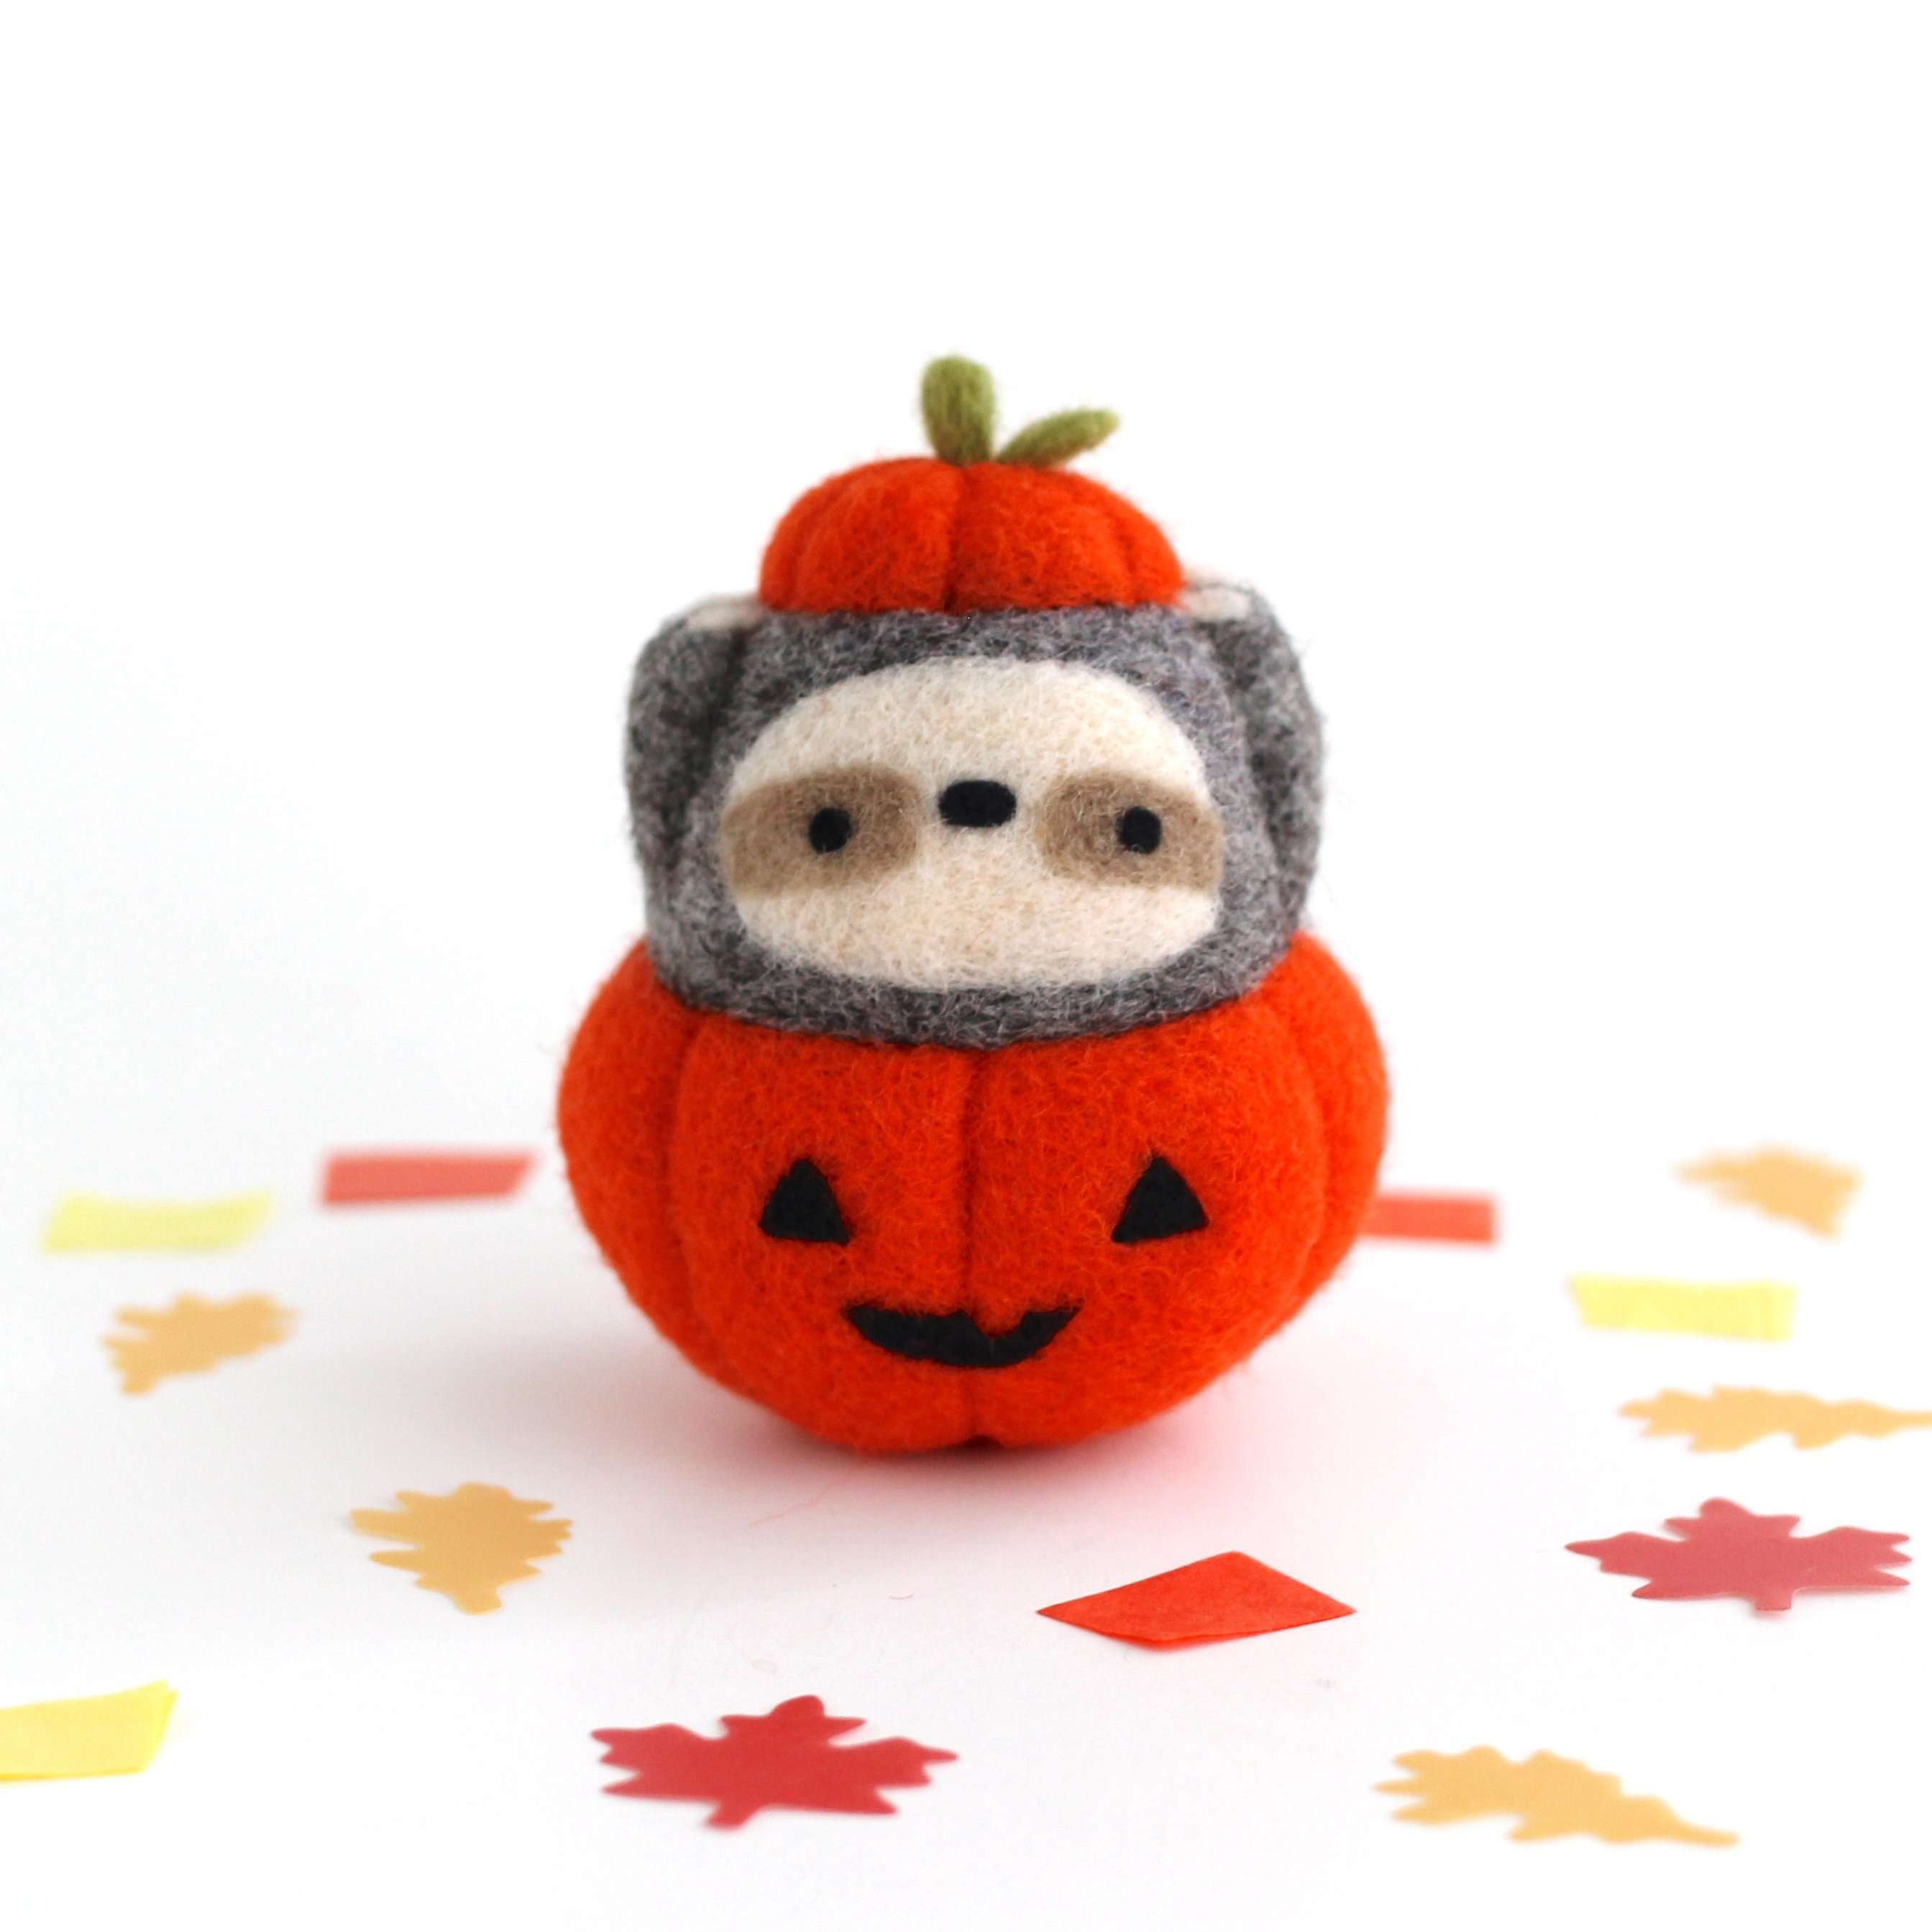 Needle Felted Sloth in Jack-o'-Lantern (Bright Orange Variant) by Wild Whimsy Woolies